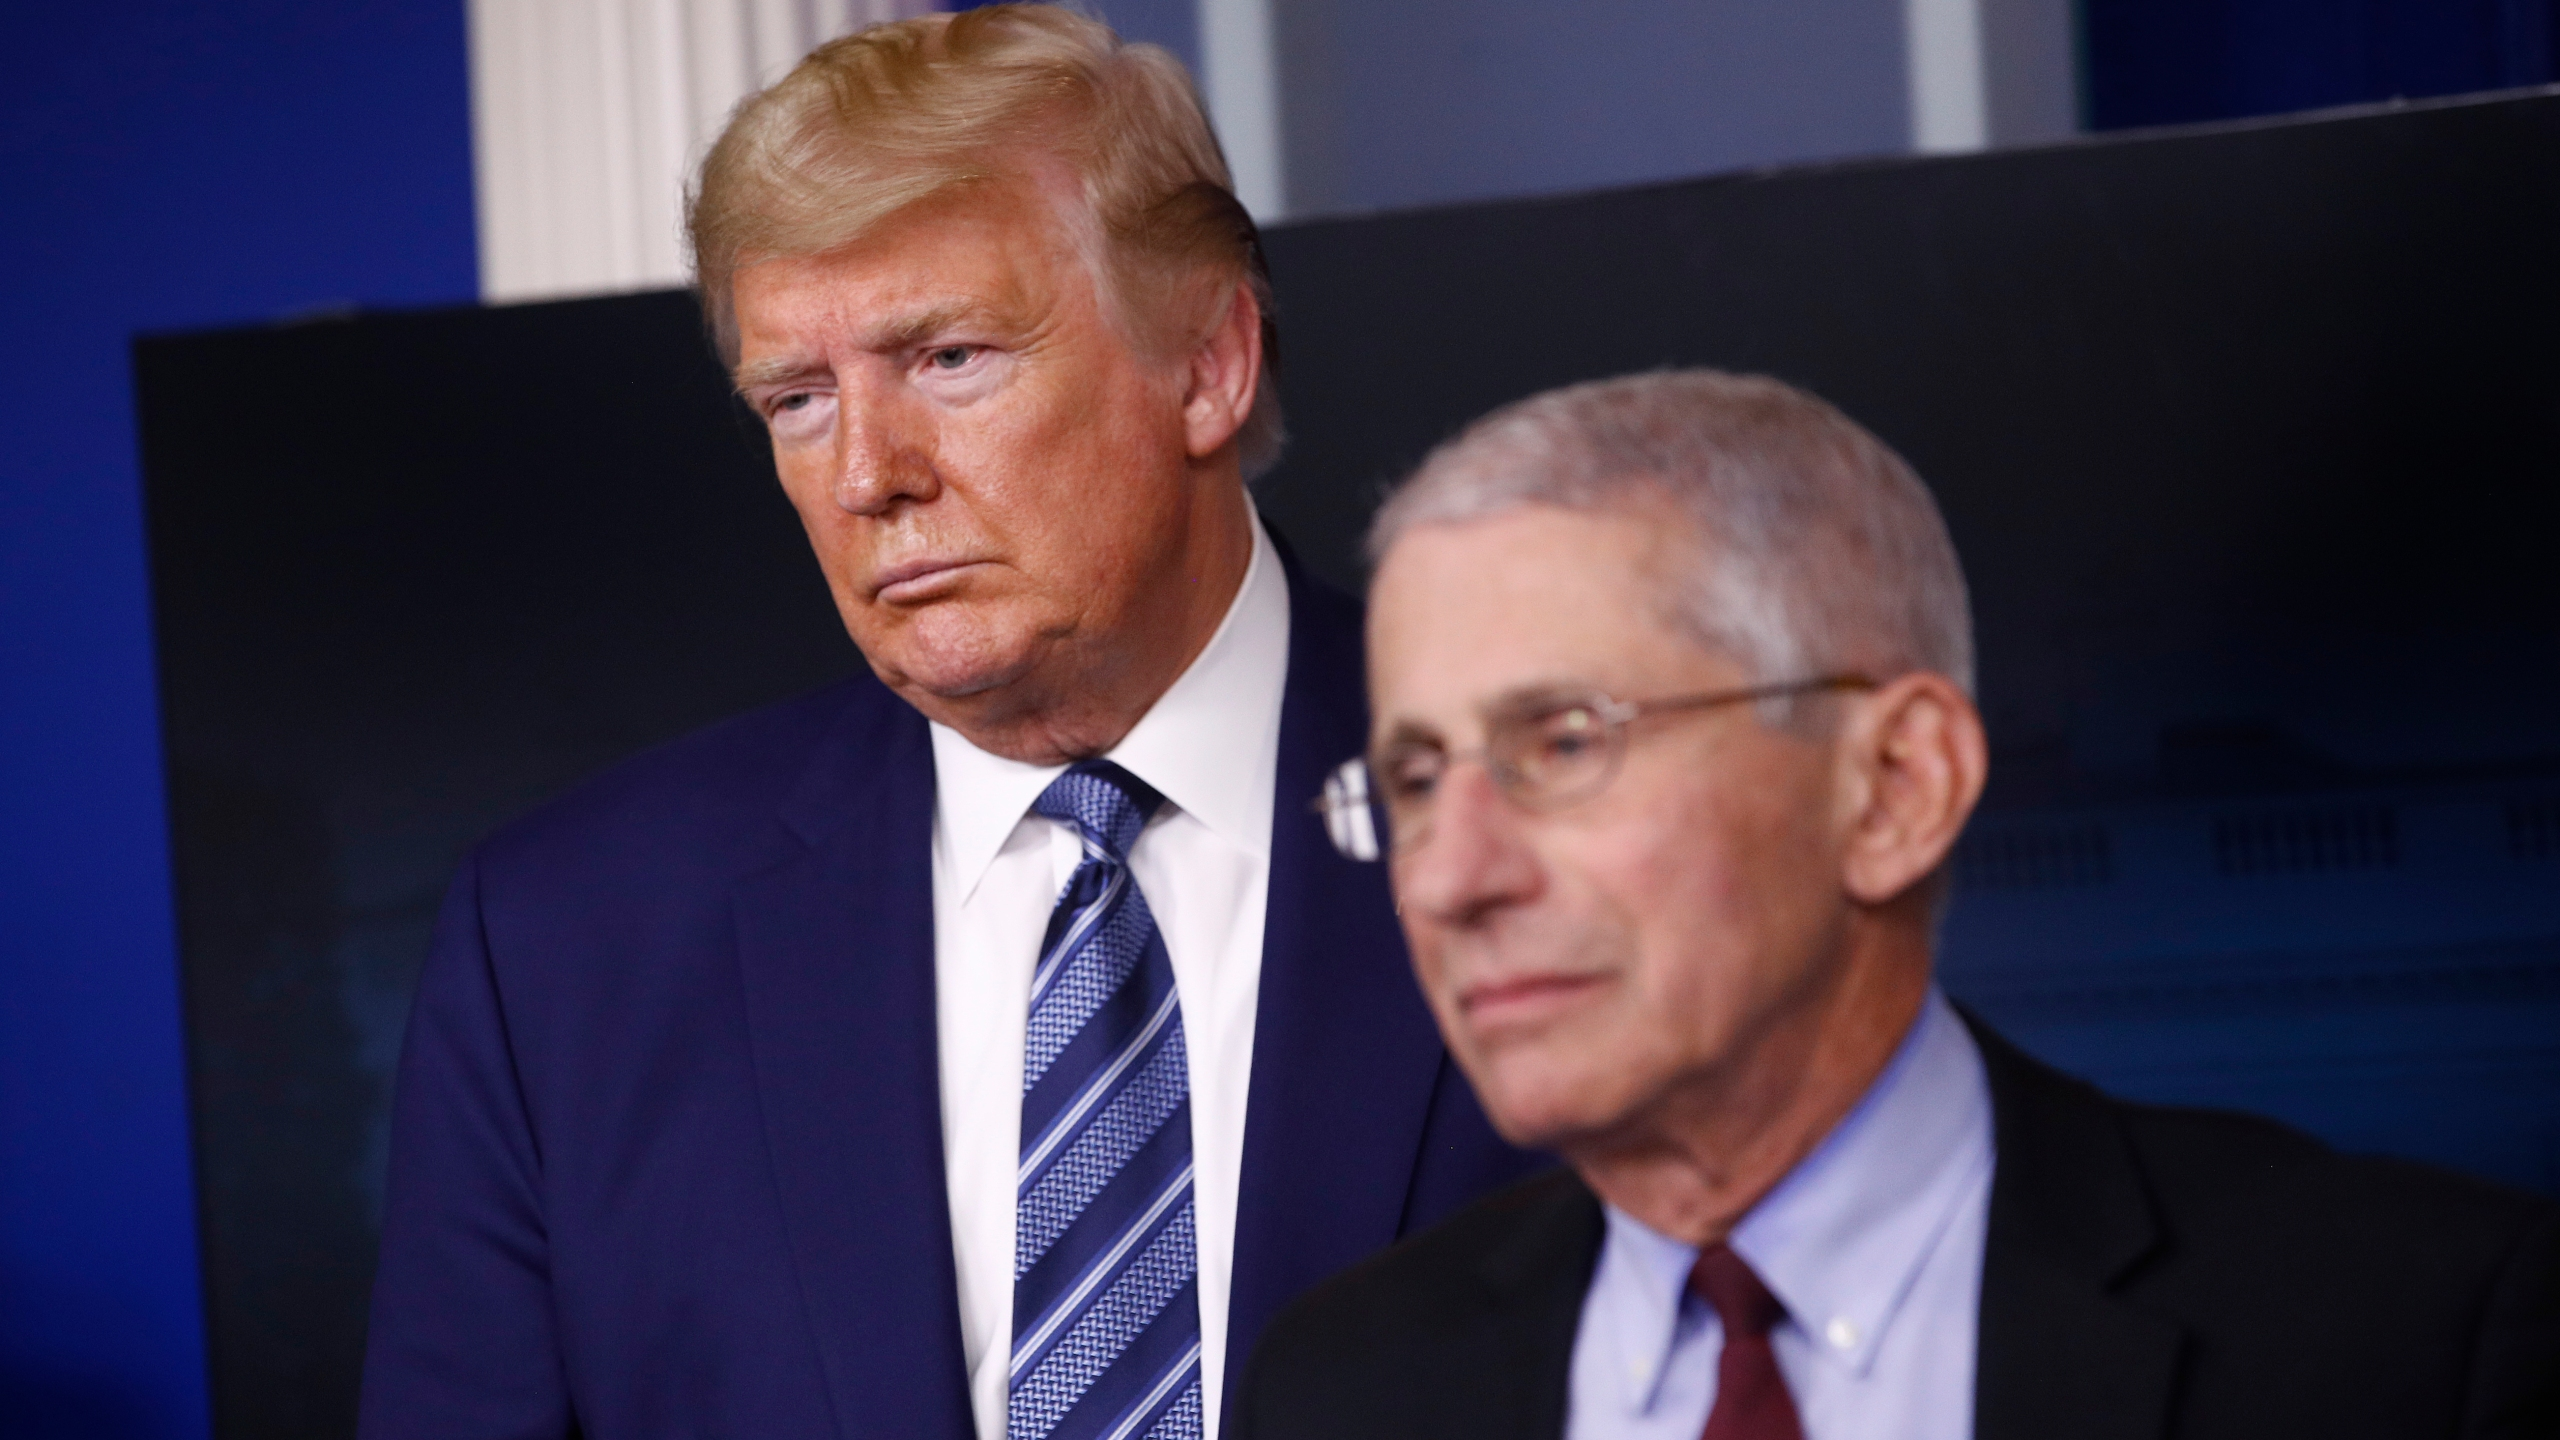 Trump at odds with Dr. Fauci's congressional testimony over reopening schools, economy